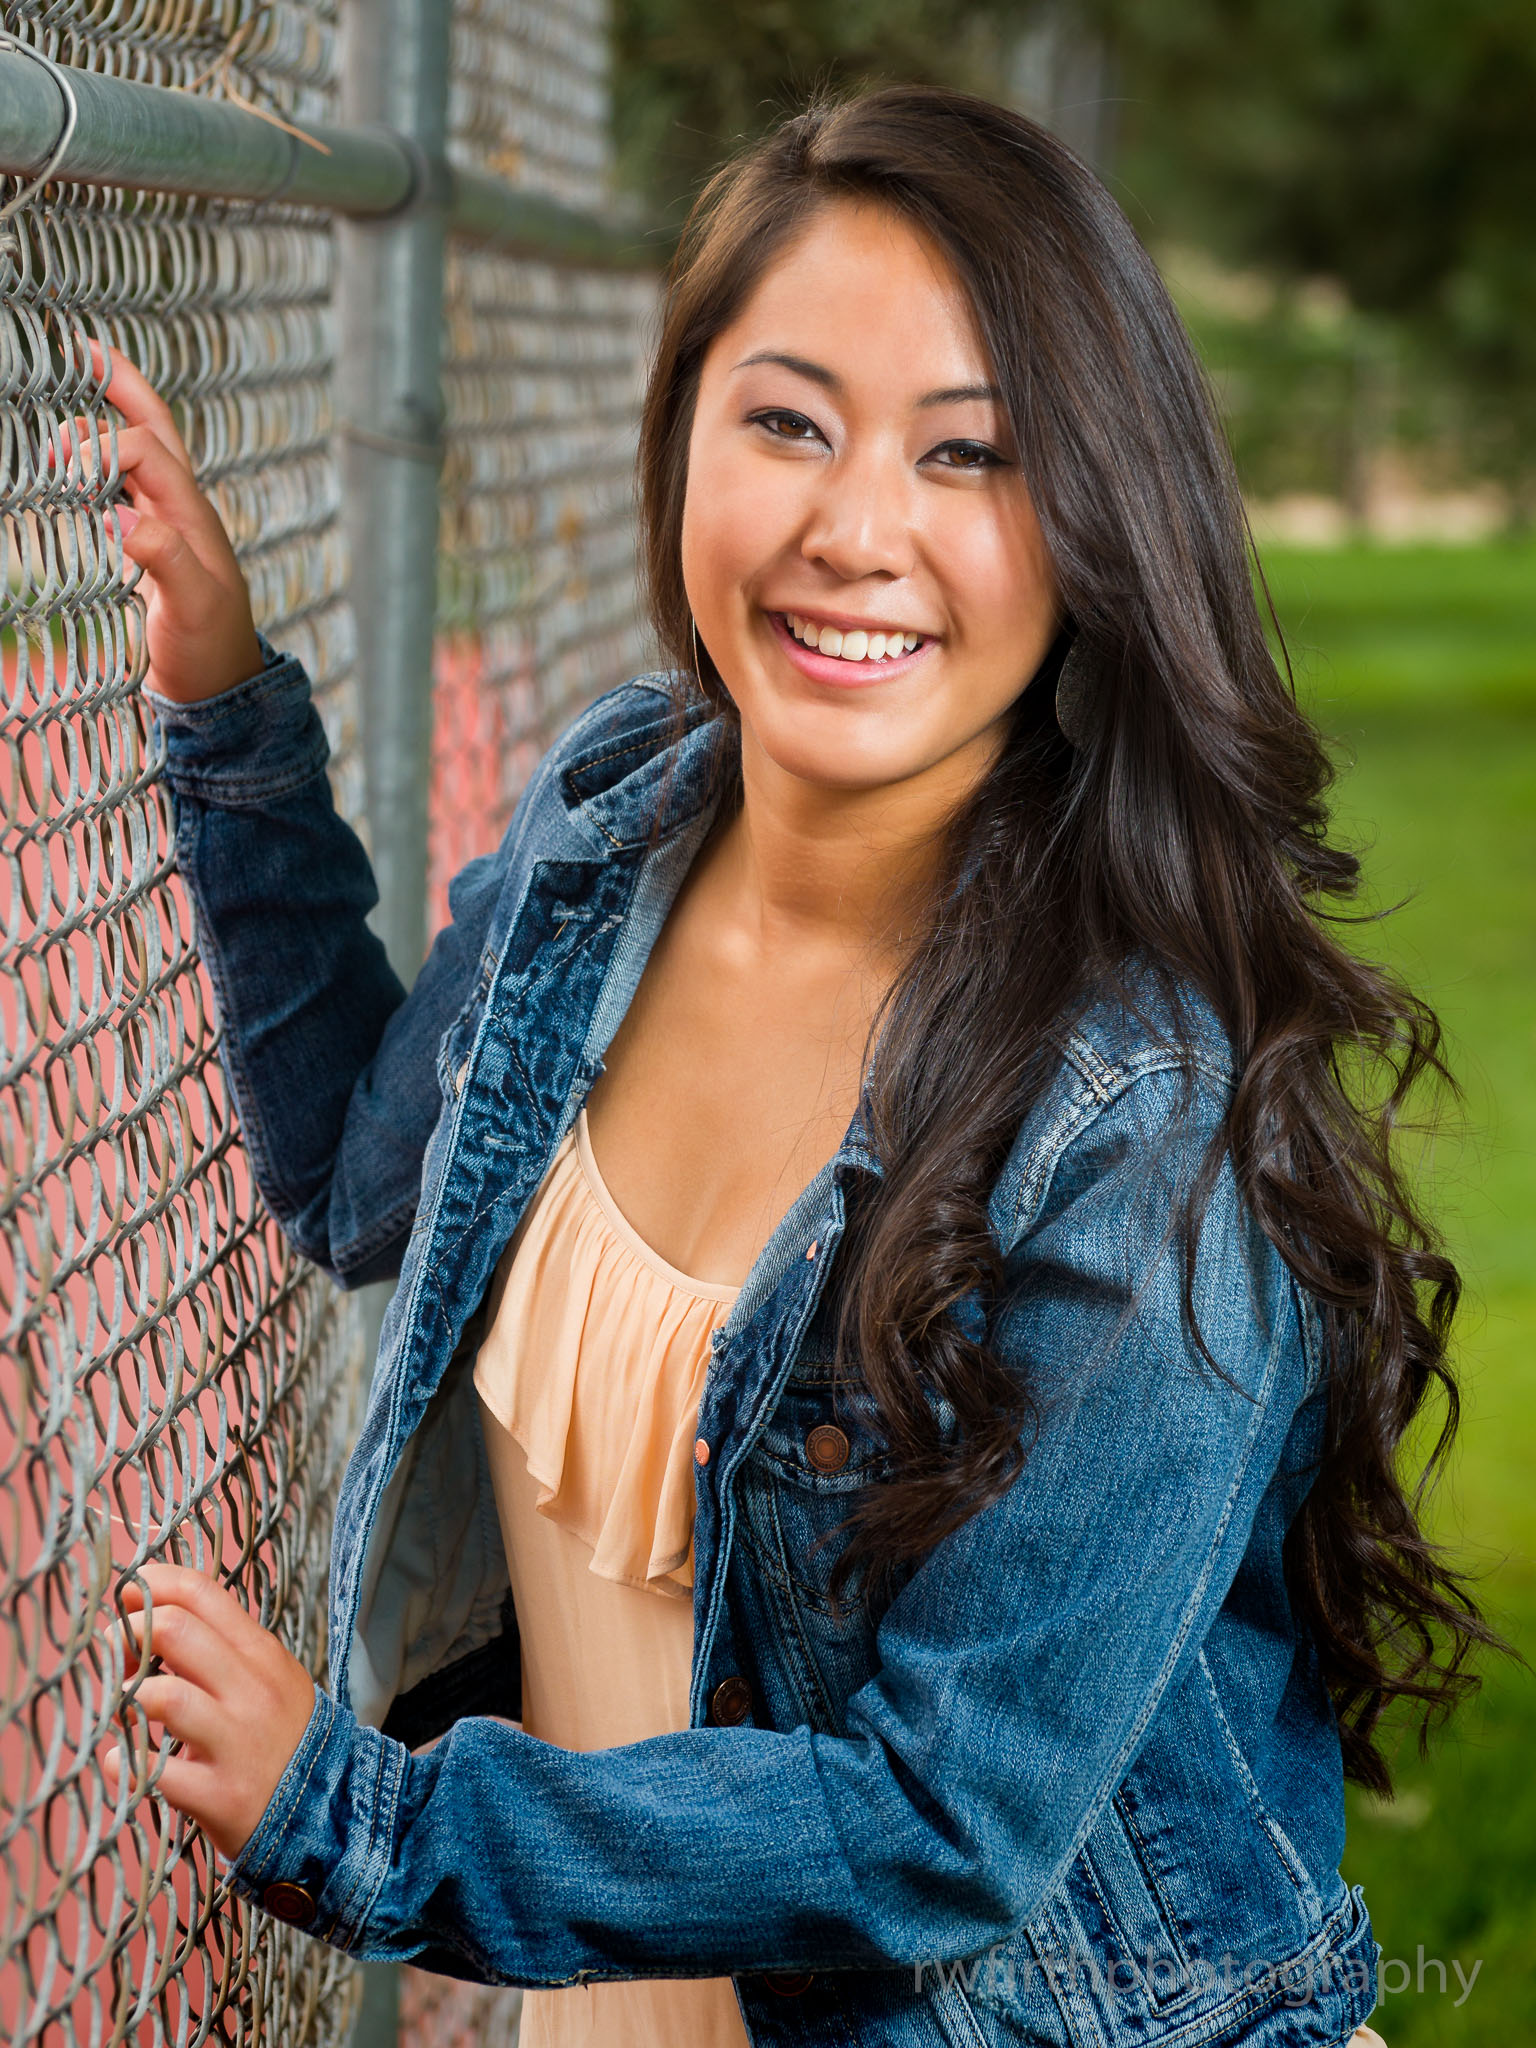 High school senior Crystal during a senior photography session in 2014.  The venue for this session was the City of Colorado Springs demonstration gardens.  Photo by Richard Firth, R.W. Firth Photography.